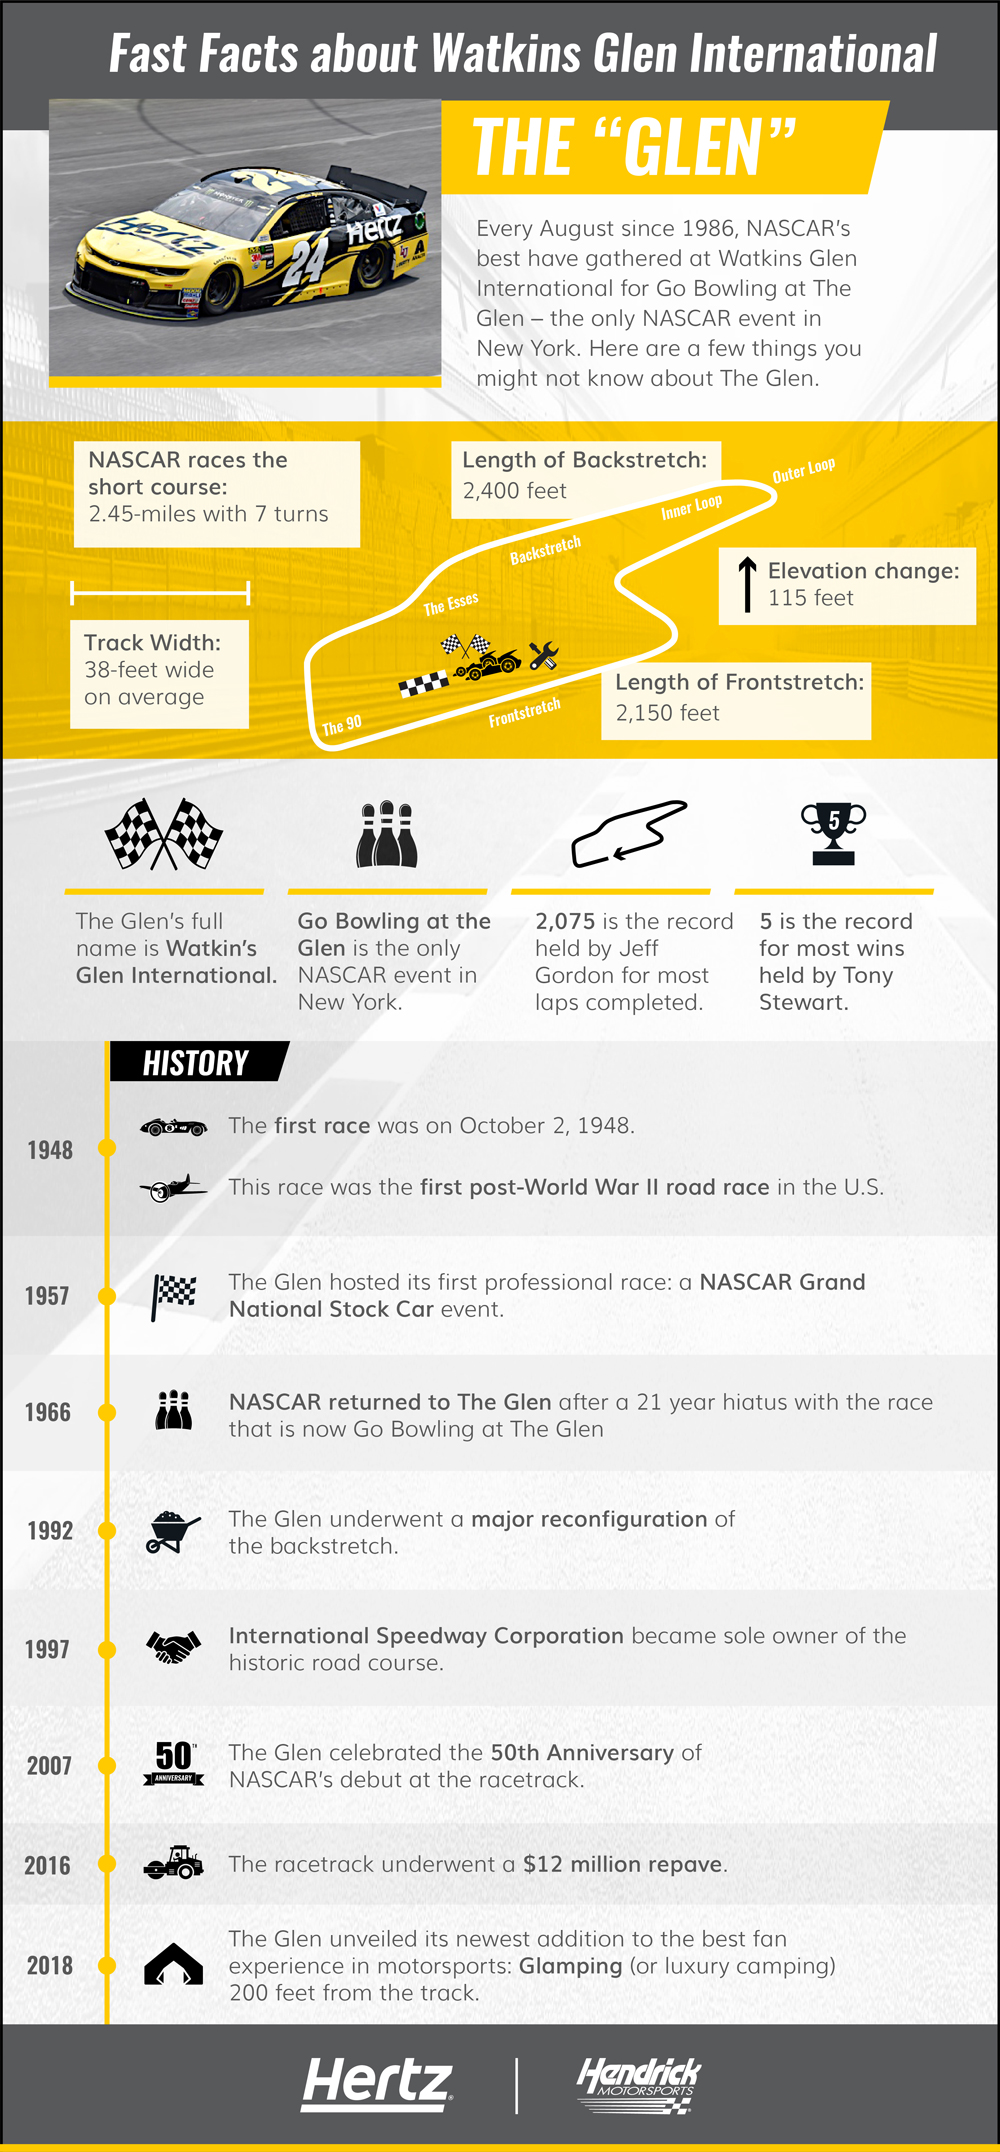 Watkins Glen International infographic featuring various statistics about the history and logistics of this racetrack